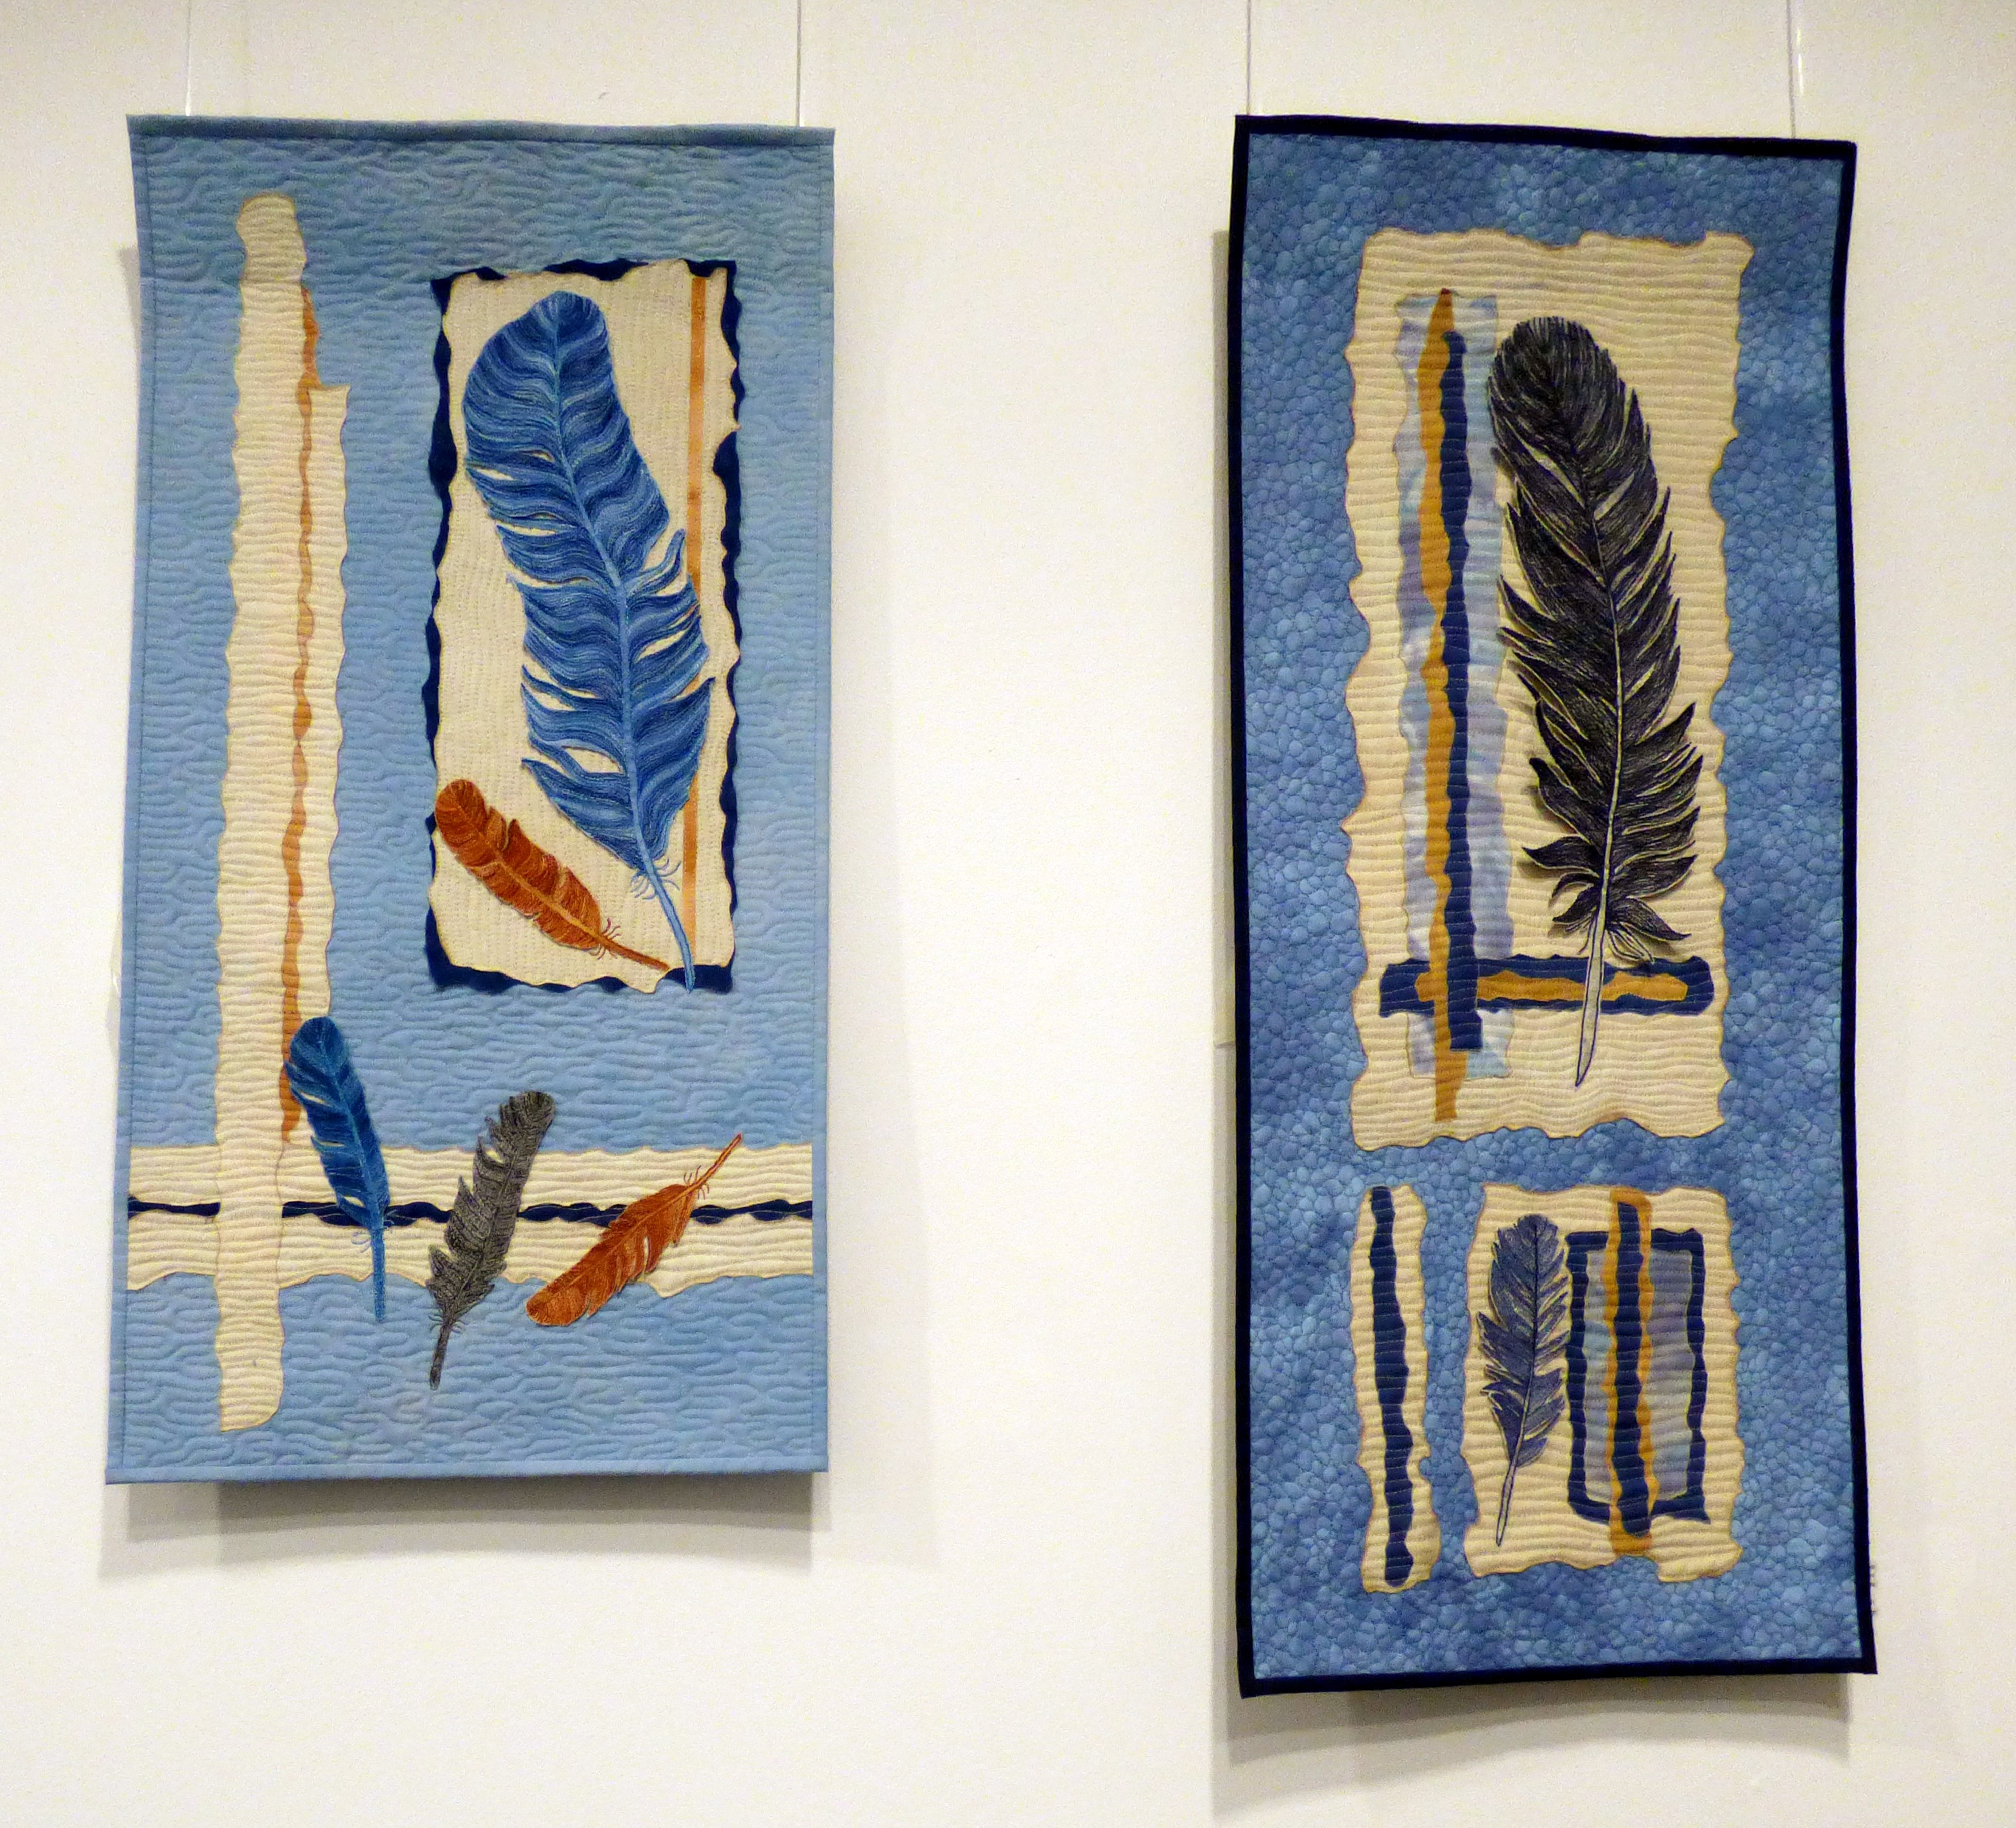 NATURE RAMBLE JAY and NATURE RAMBLE TWO by Jane Simpson, dyed, painted, machine quilted, Ten Plus @ The Atkinson, 2018